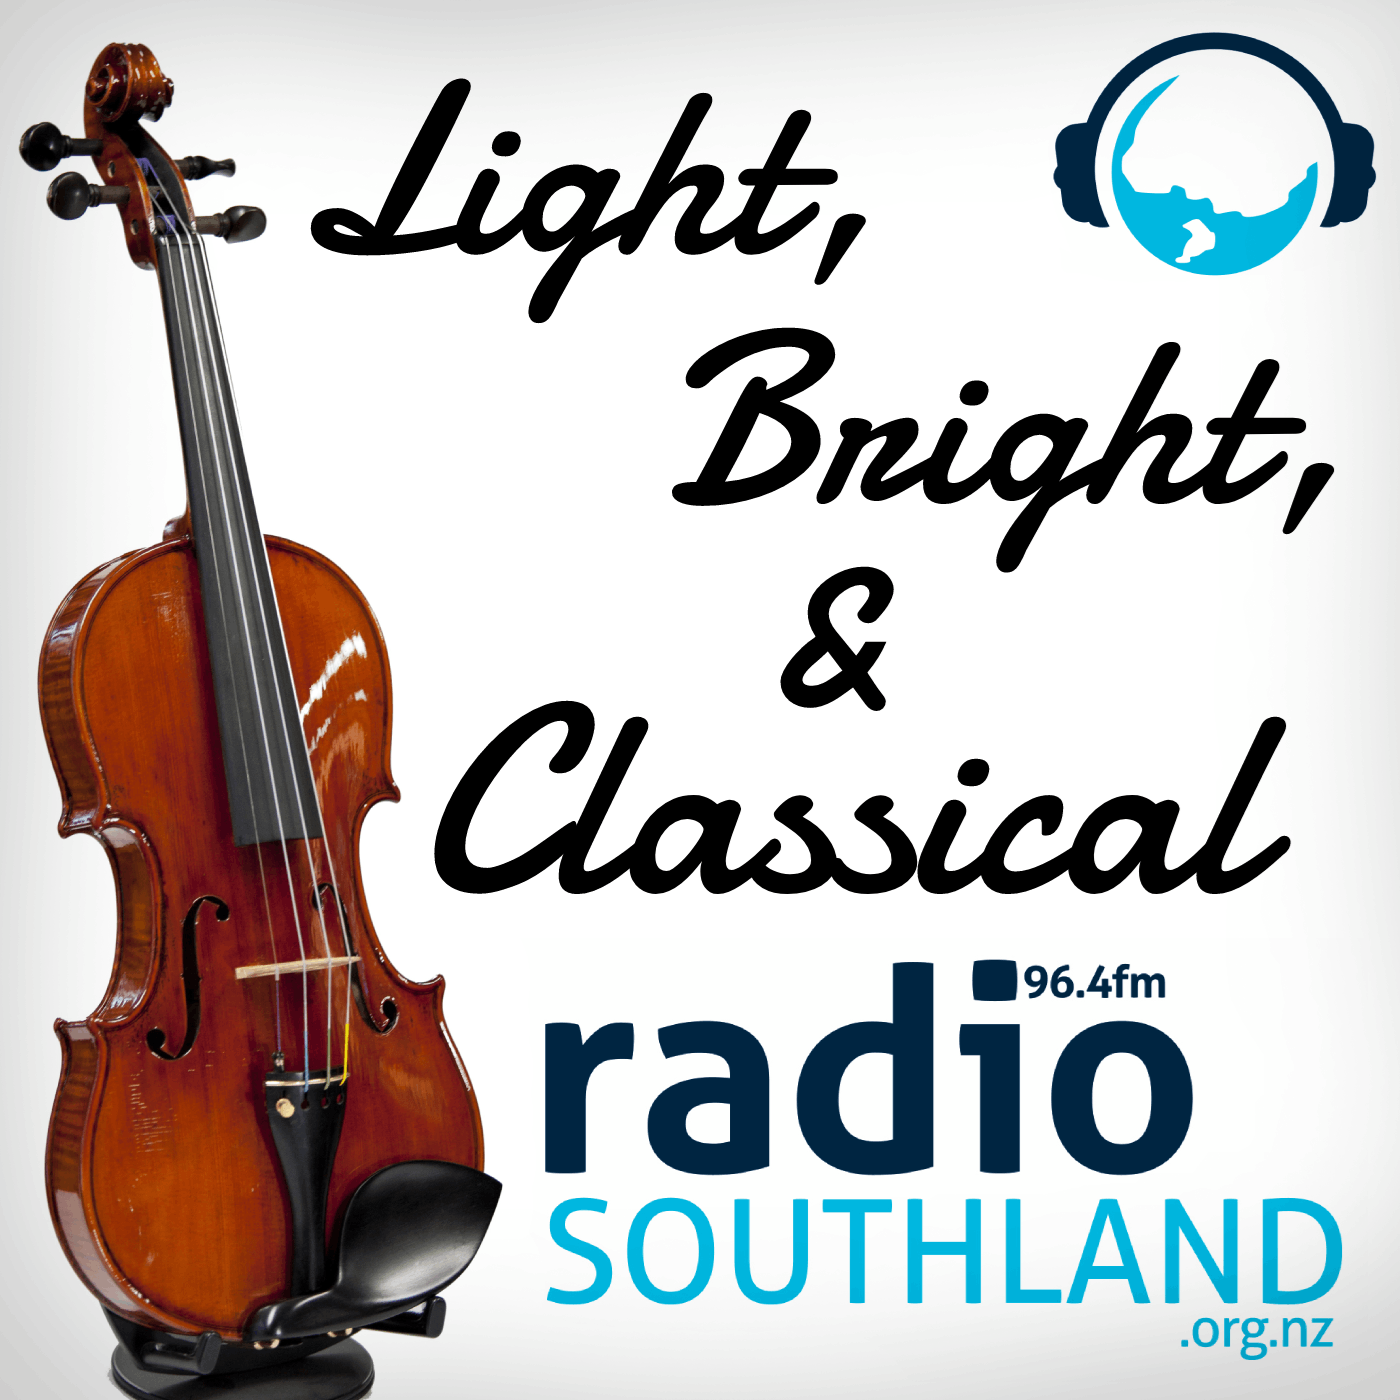 Light, Bright, and Classical - Pat Corkery